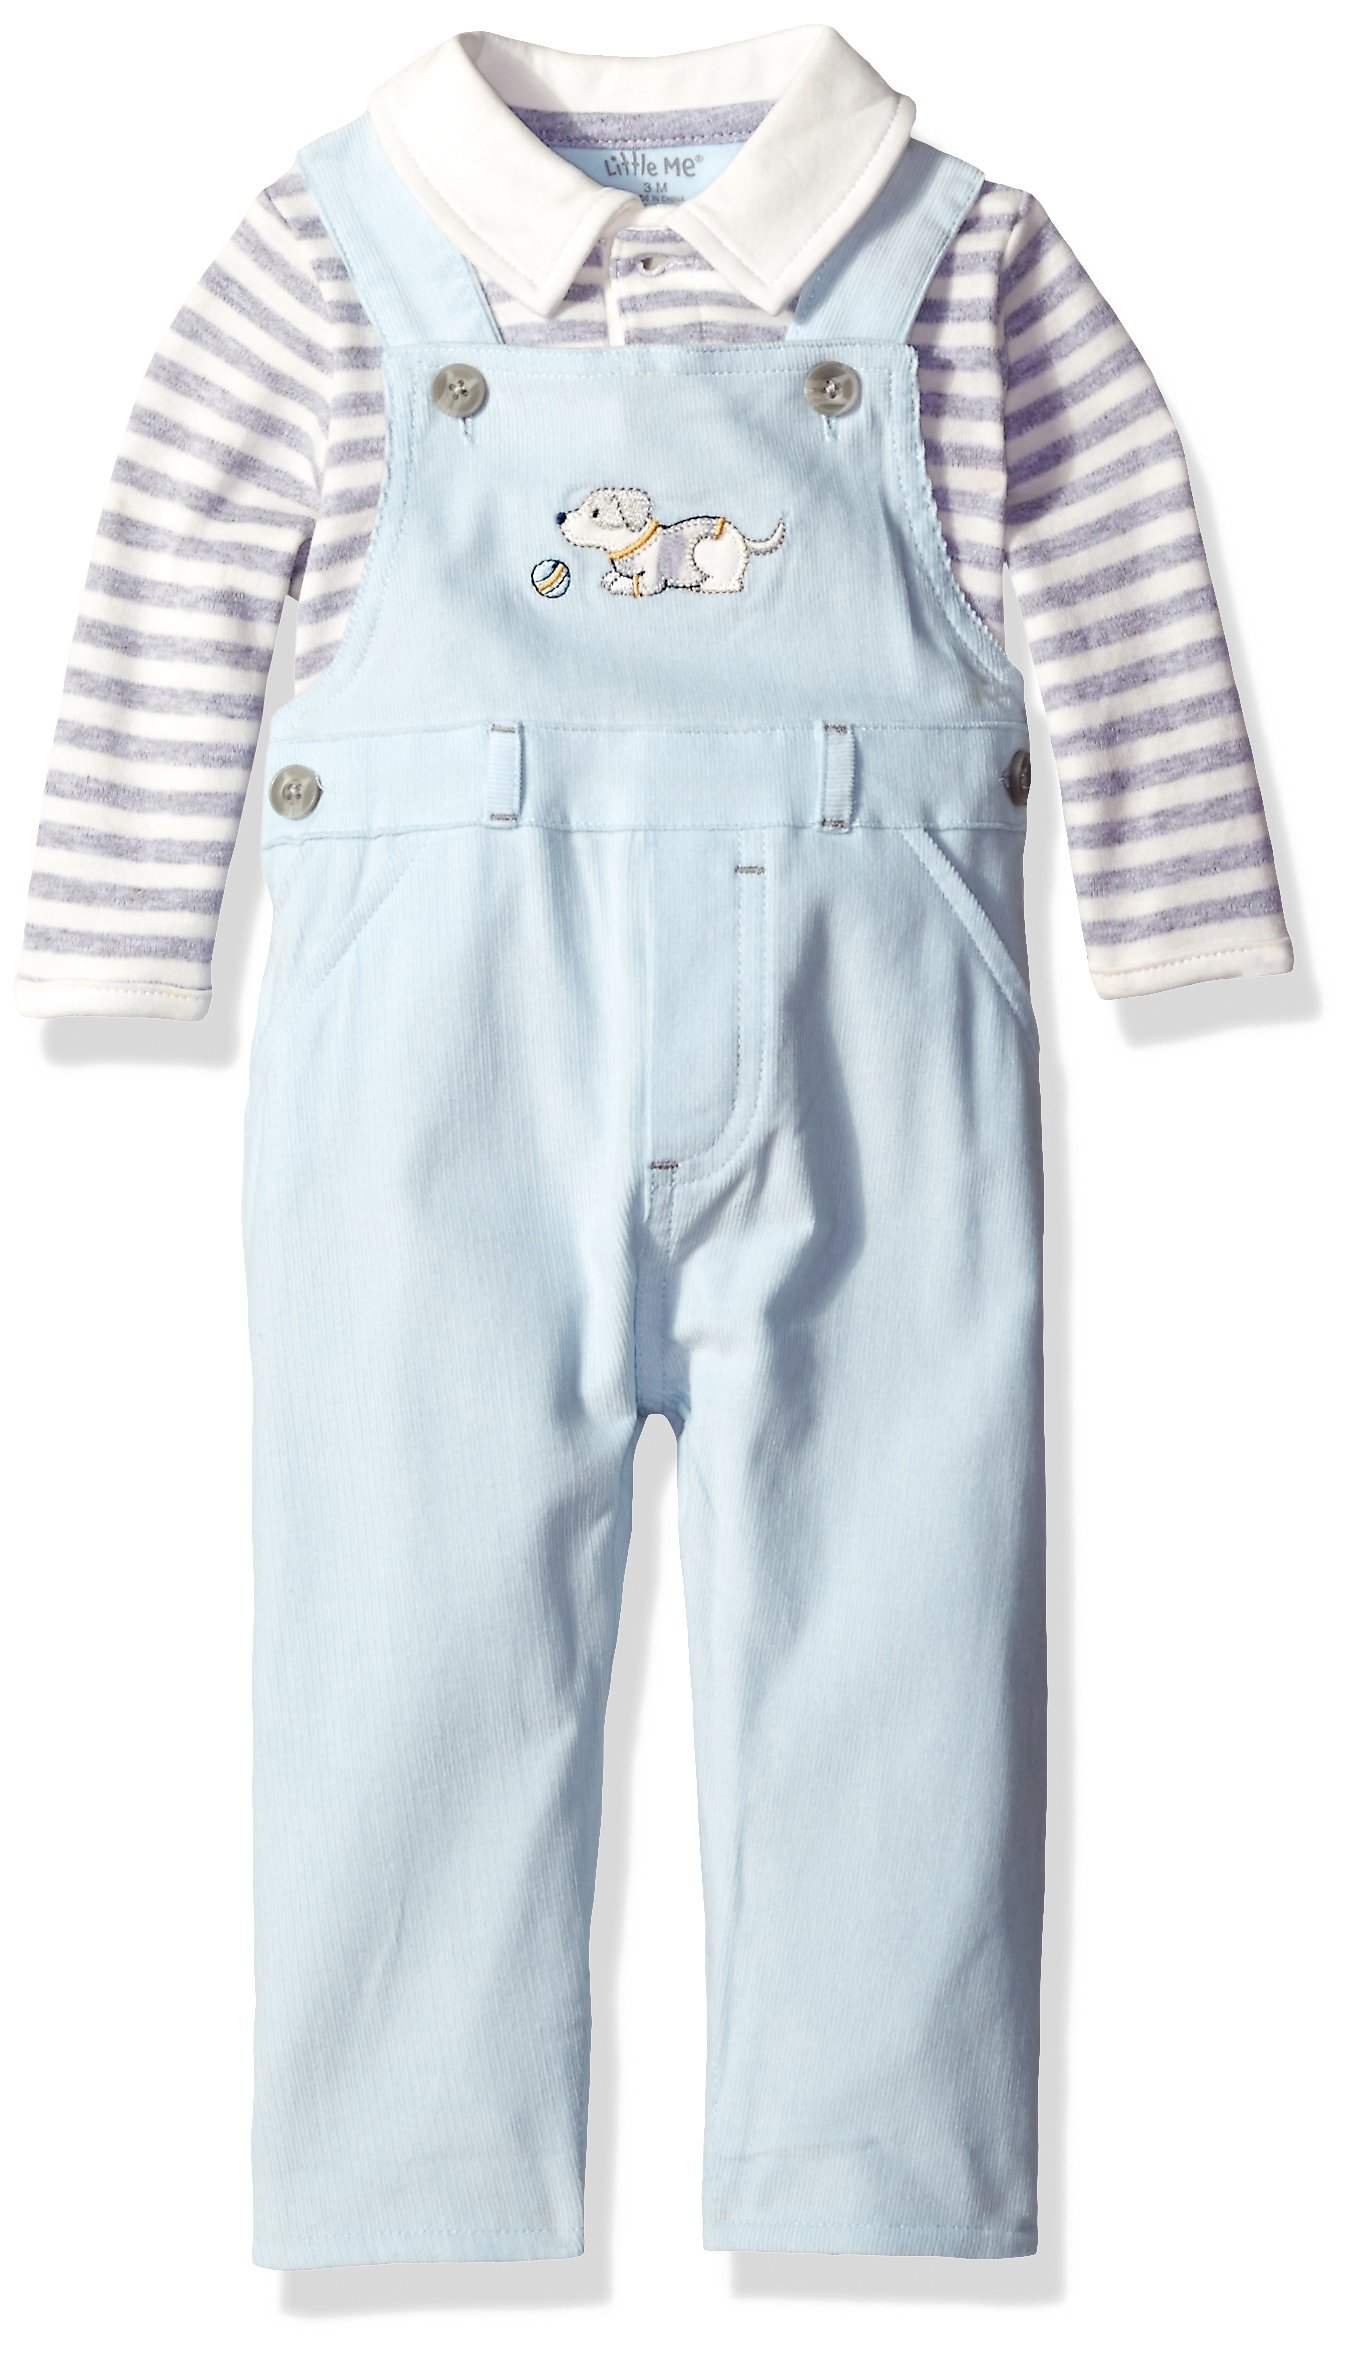 Little Me Baby Boys' Overall Set